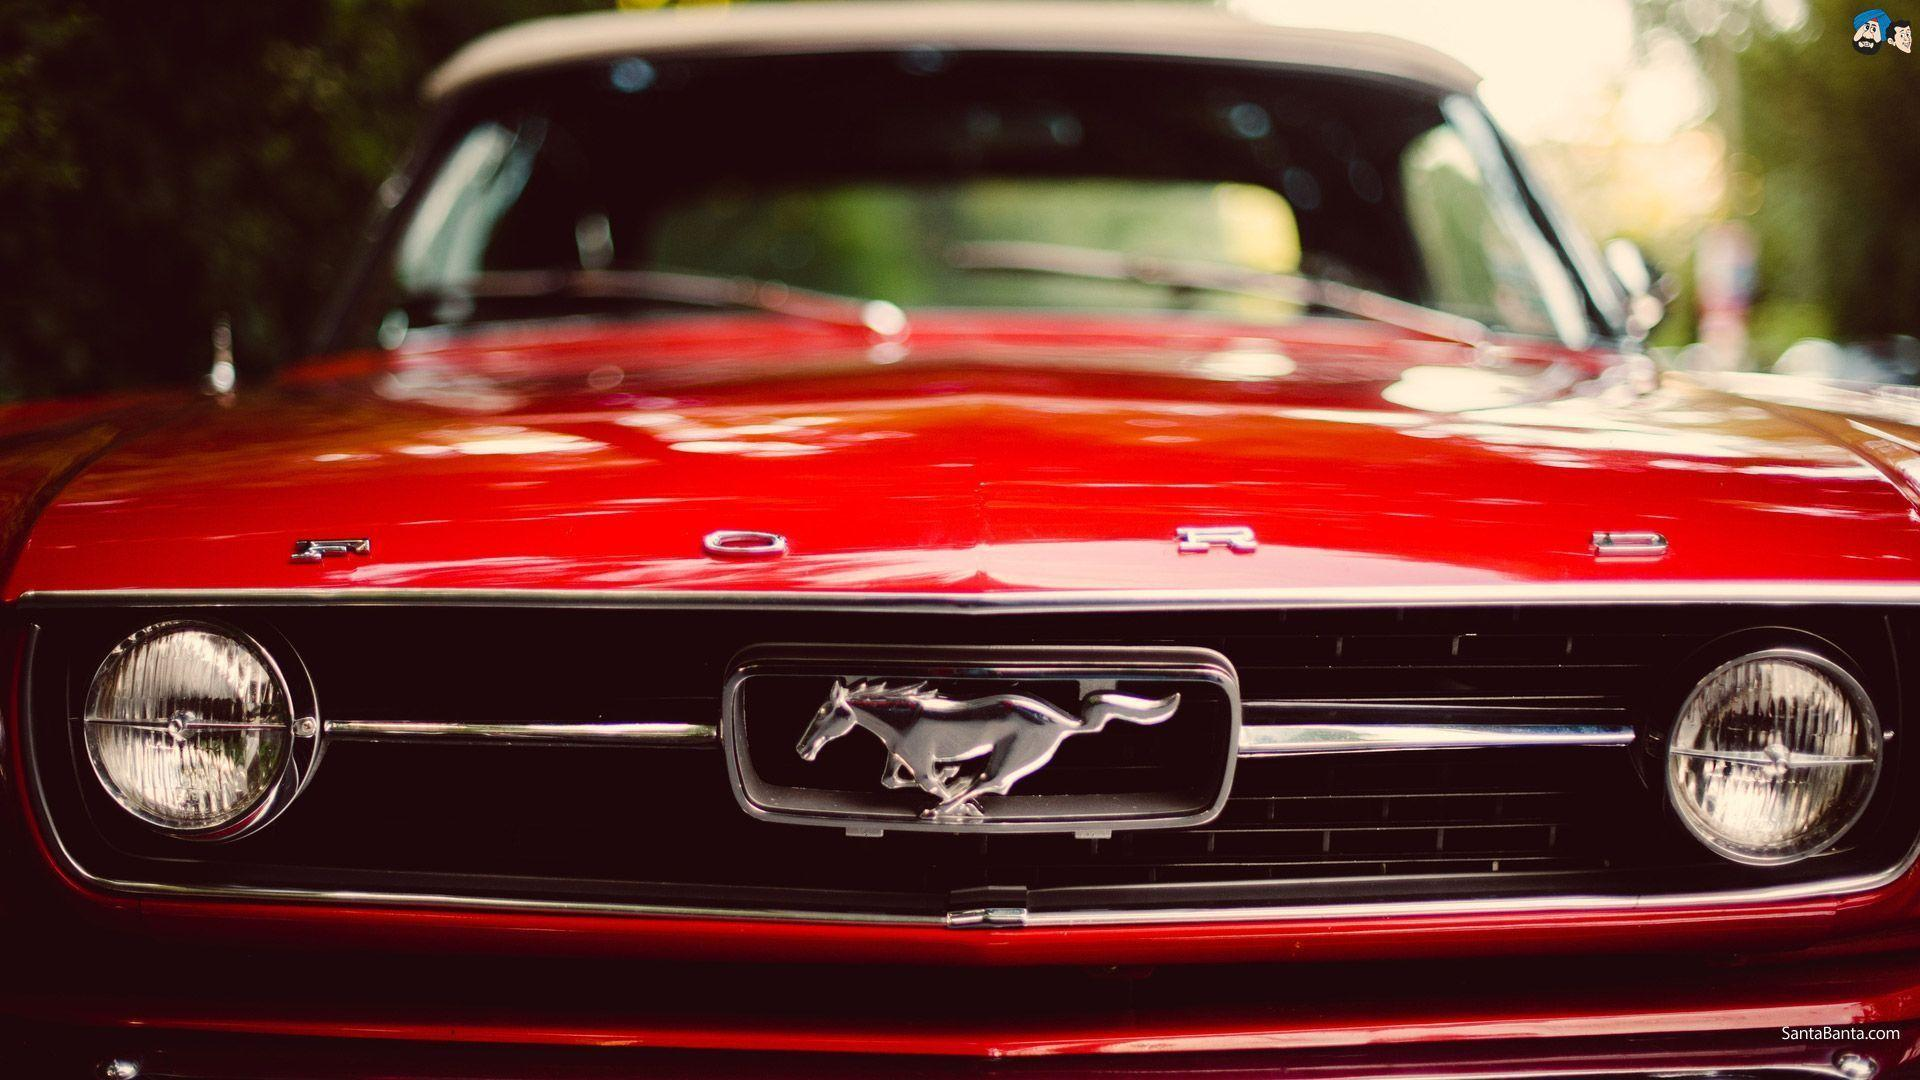 67 Mustang Wallpapers Red Wallpaper Cave